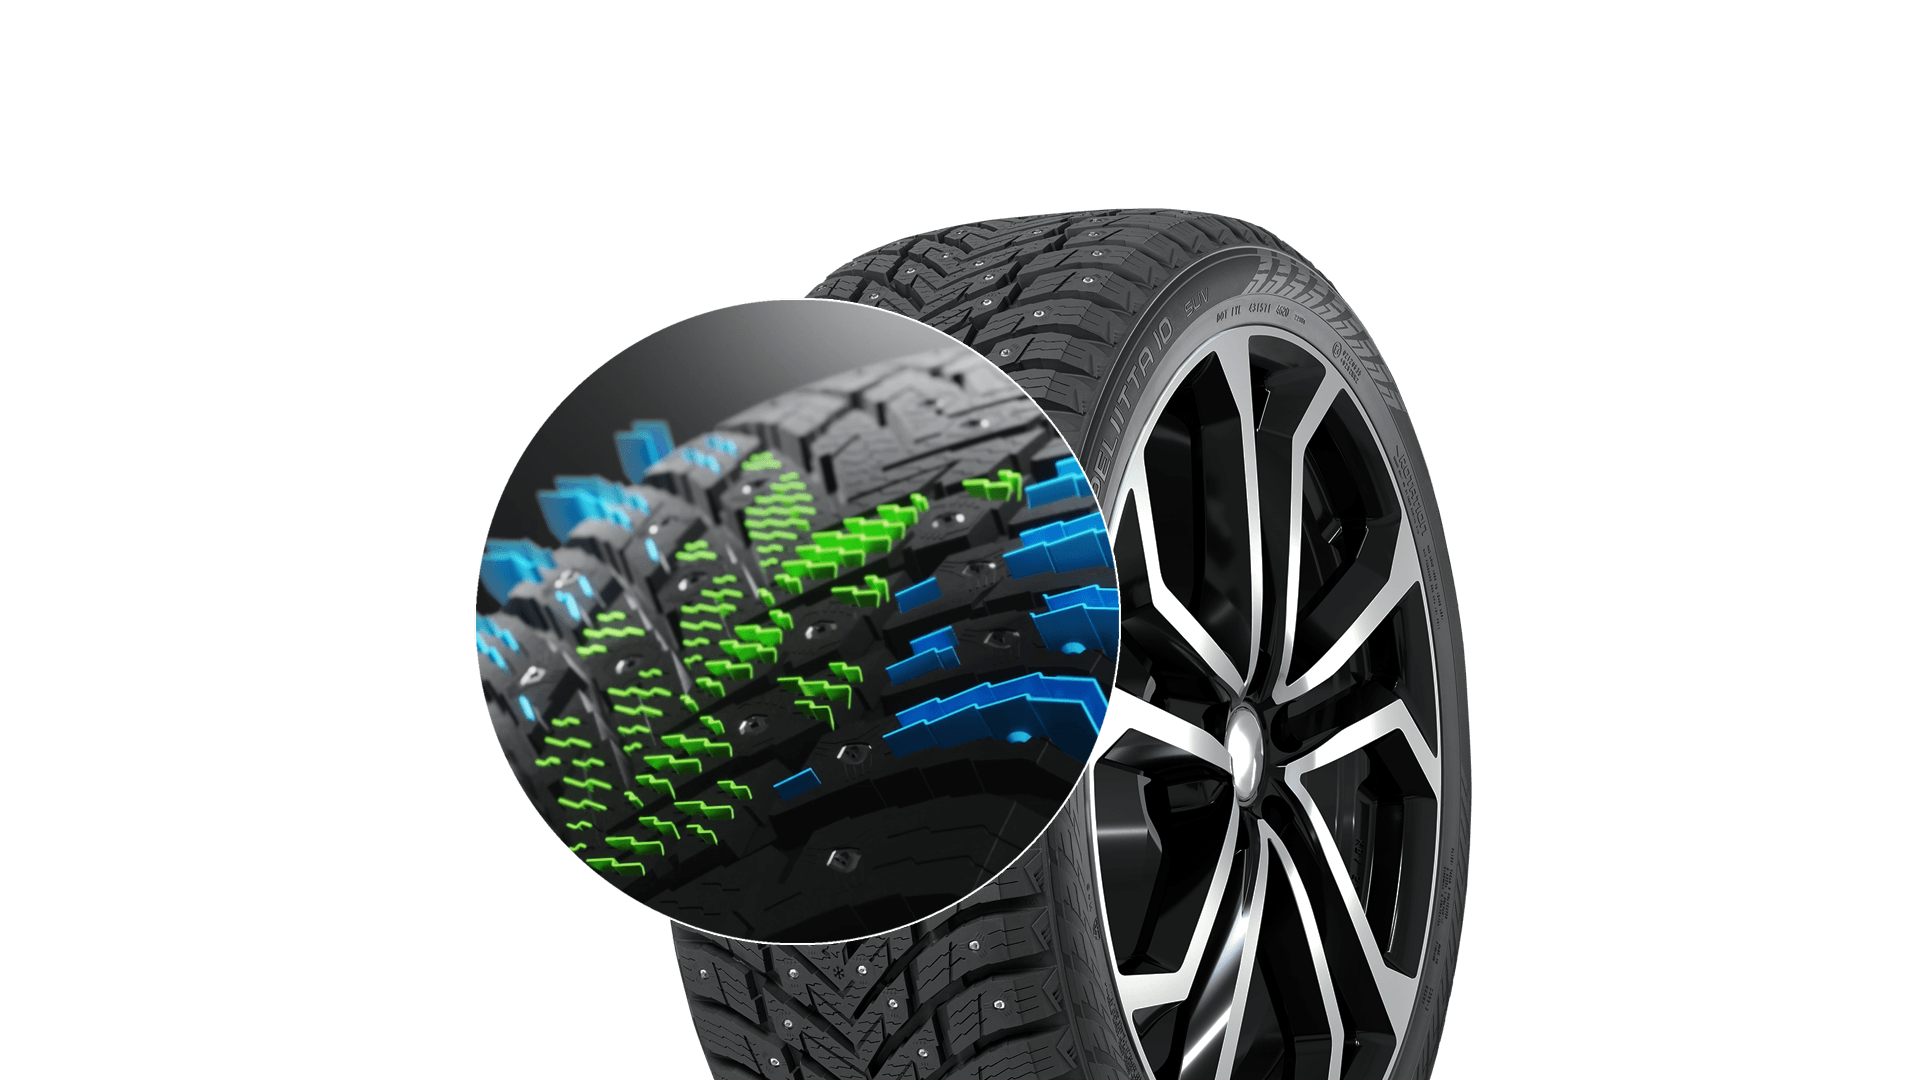 The Nokian Hakkapeliitta 10's multi-functional siping delivers safe driving in slush